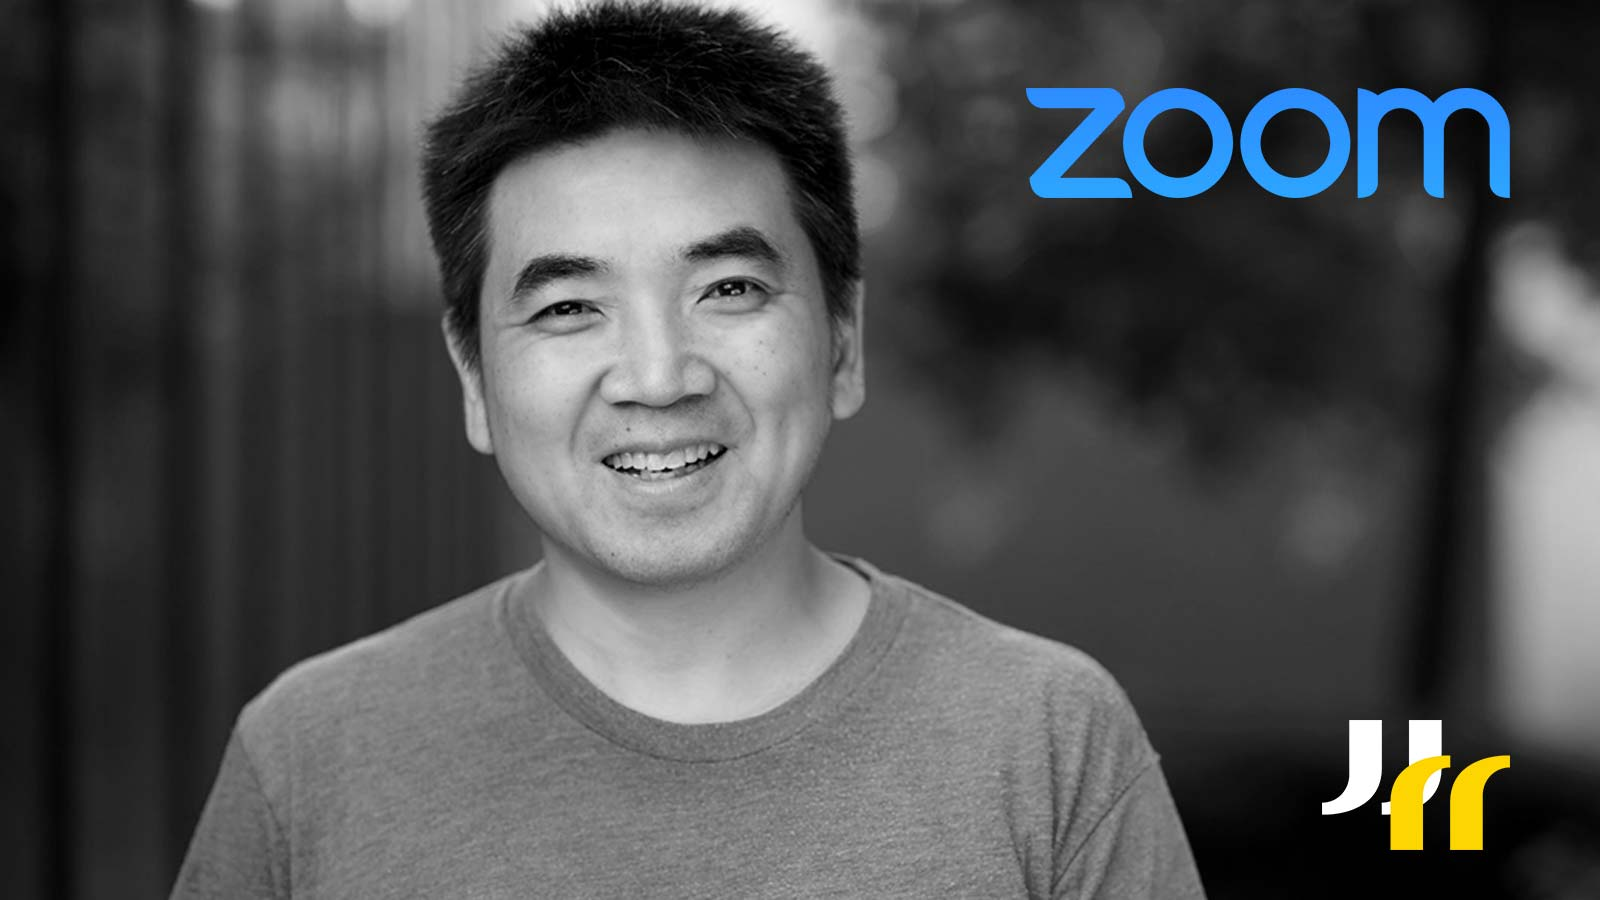 event header image - Zoom CEO Eric Yuan